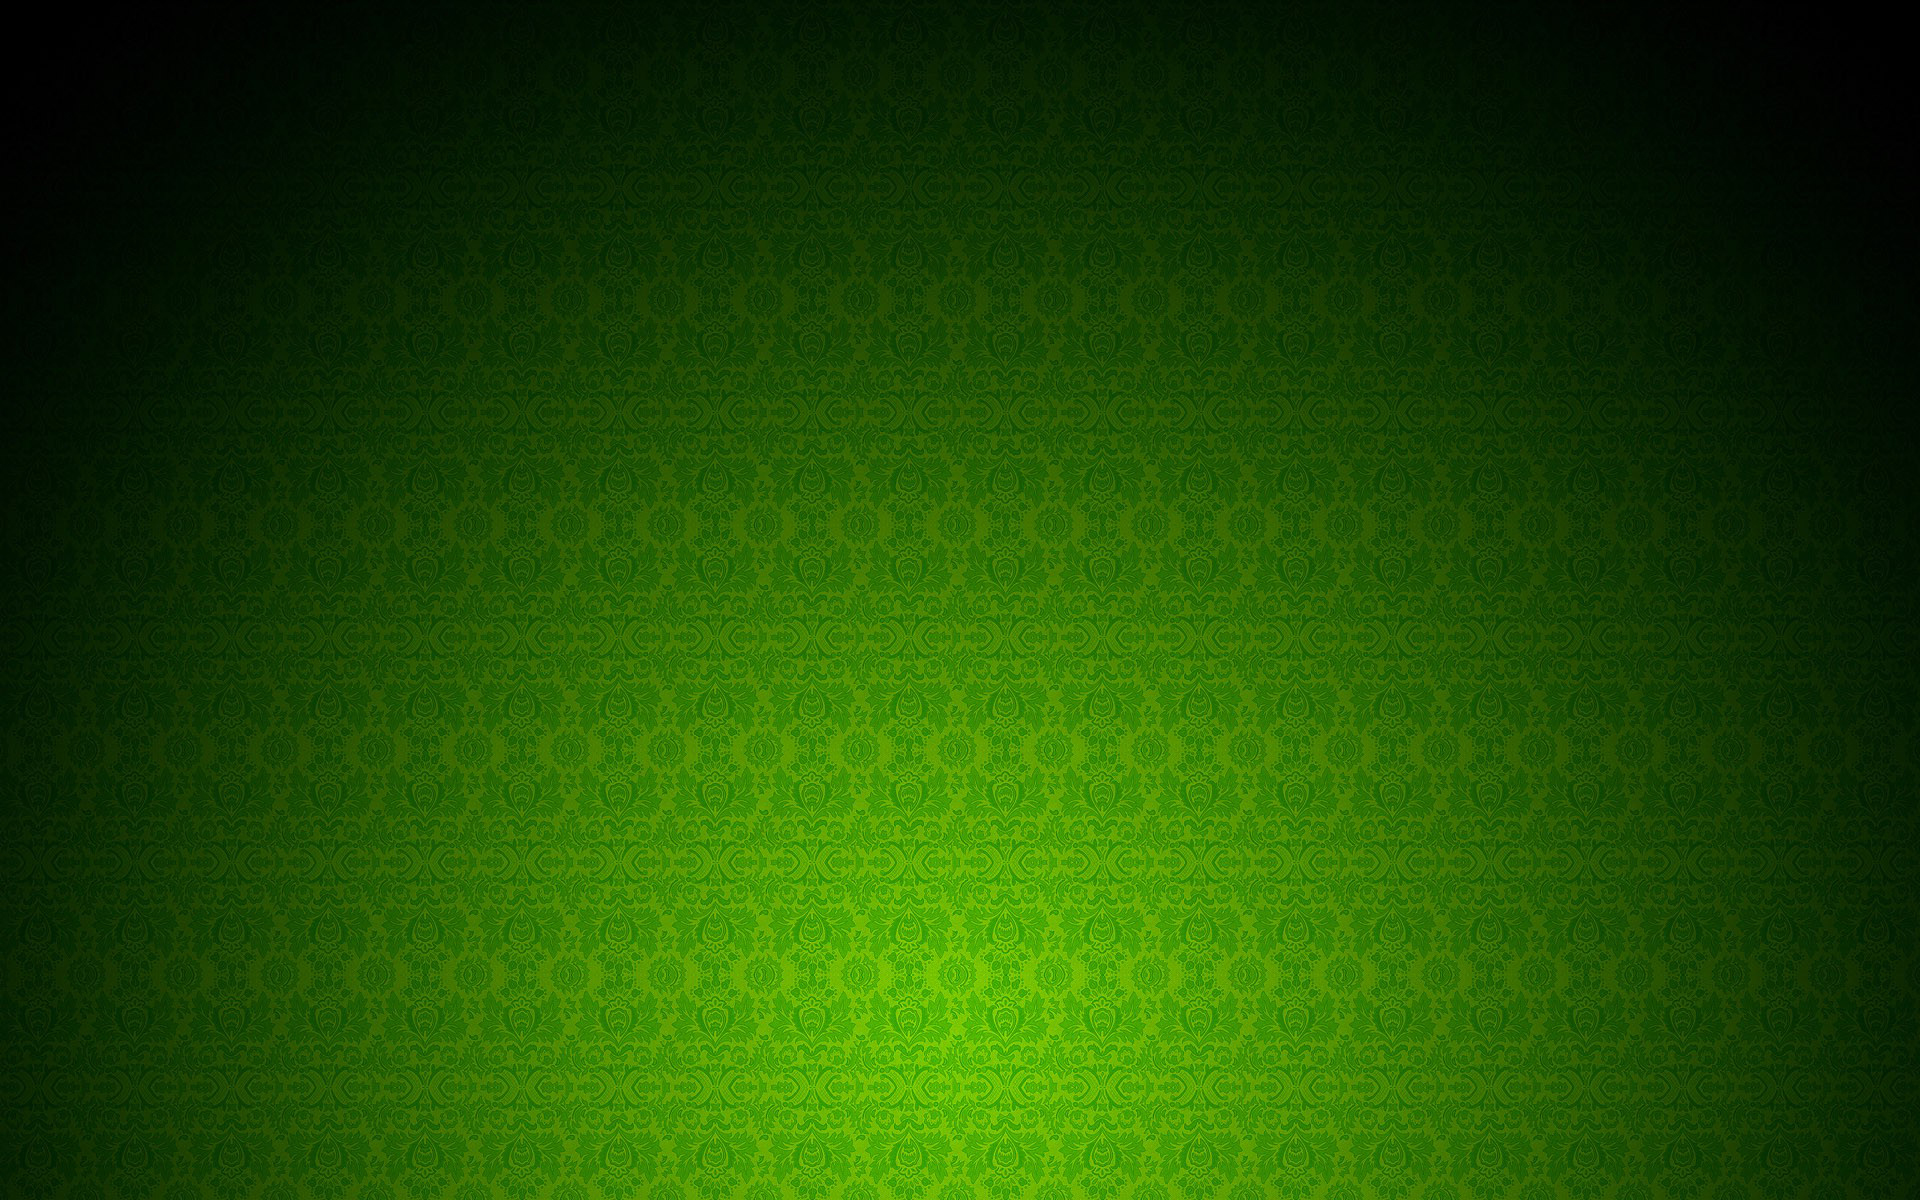 green pattern backgrounds - photo #2